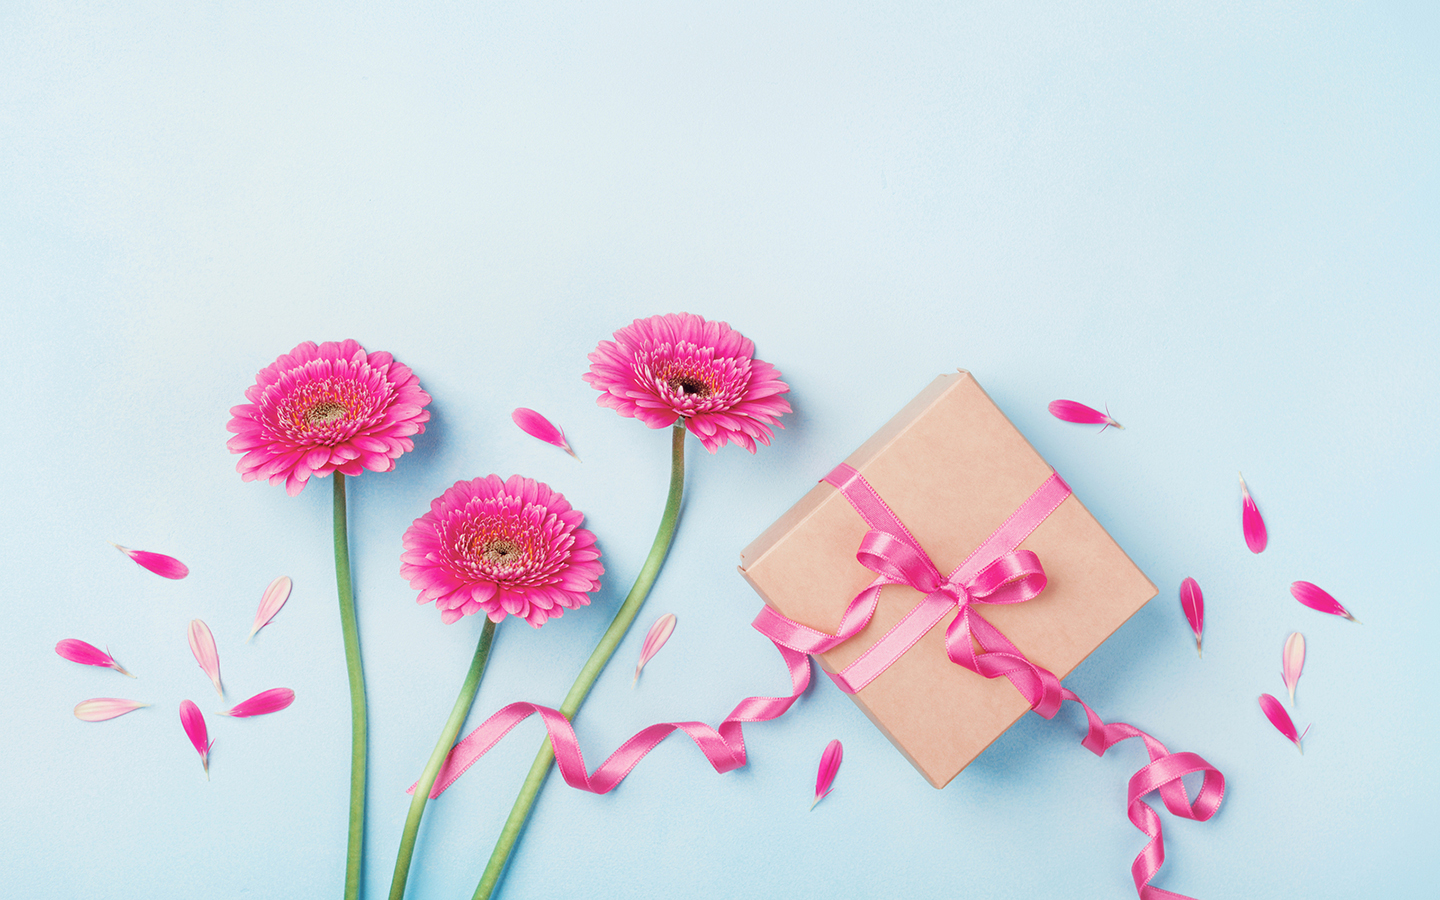 Pink flowers and a wrapped gift